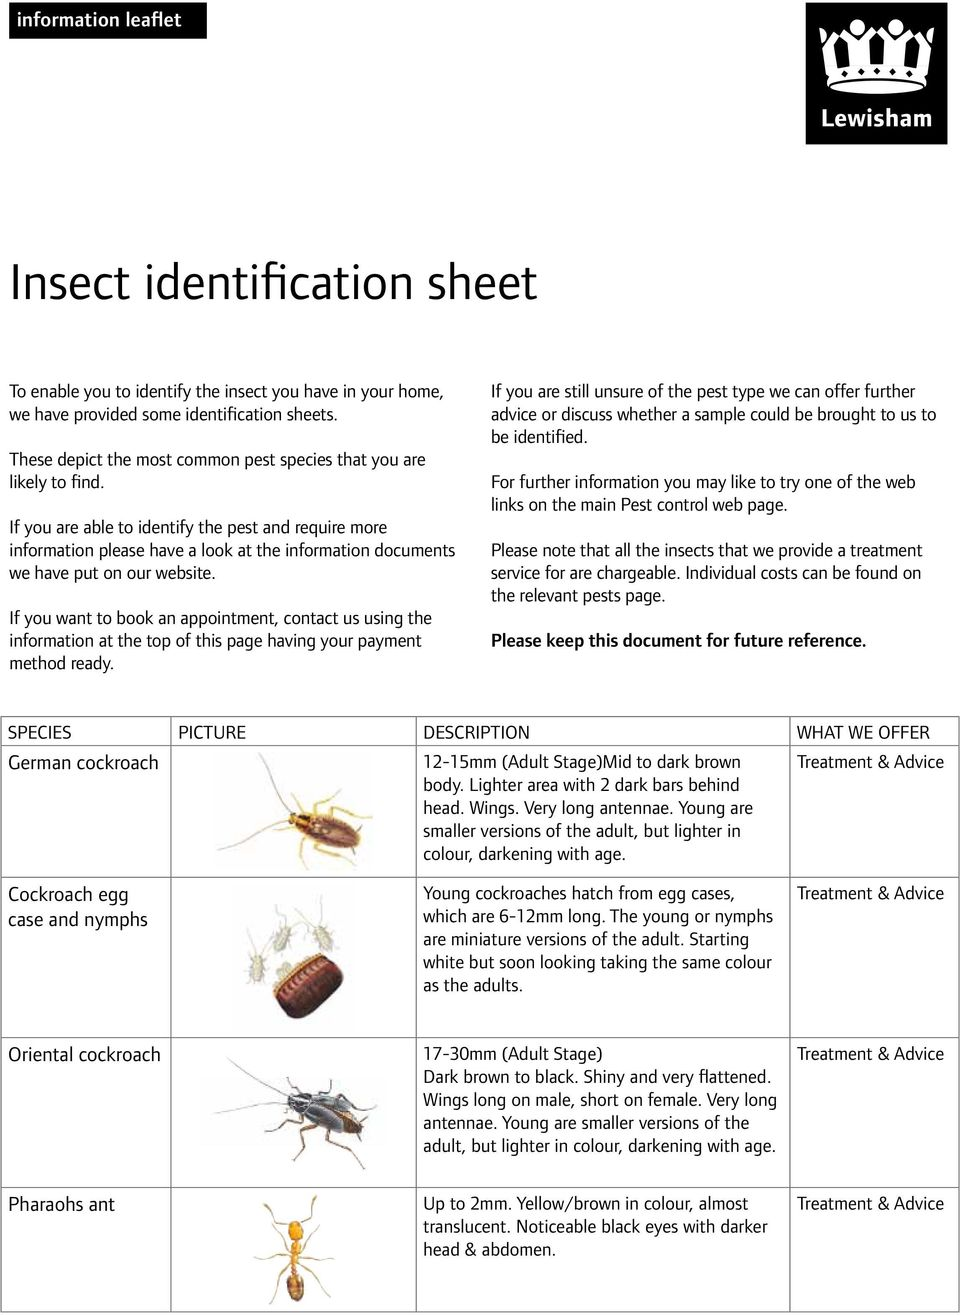 If you are able to identify the pest and require more information please have a look at the information documents we have put on our website.